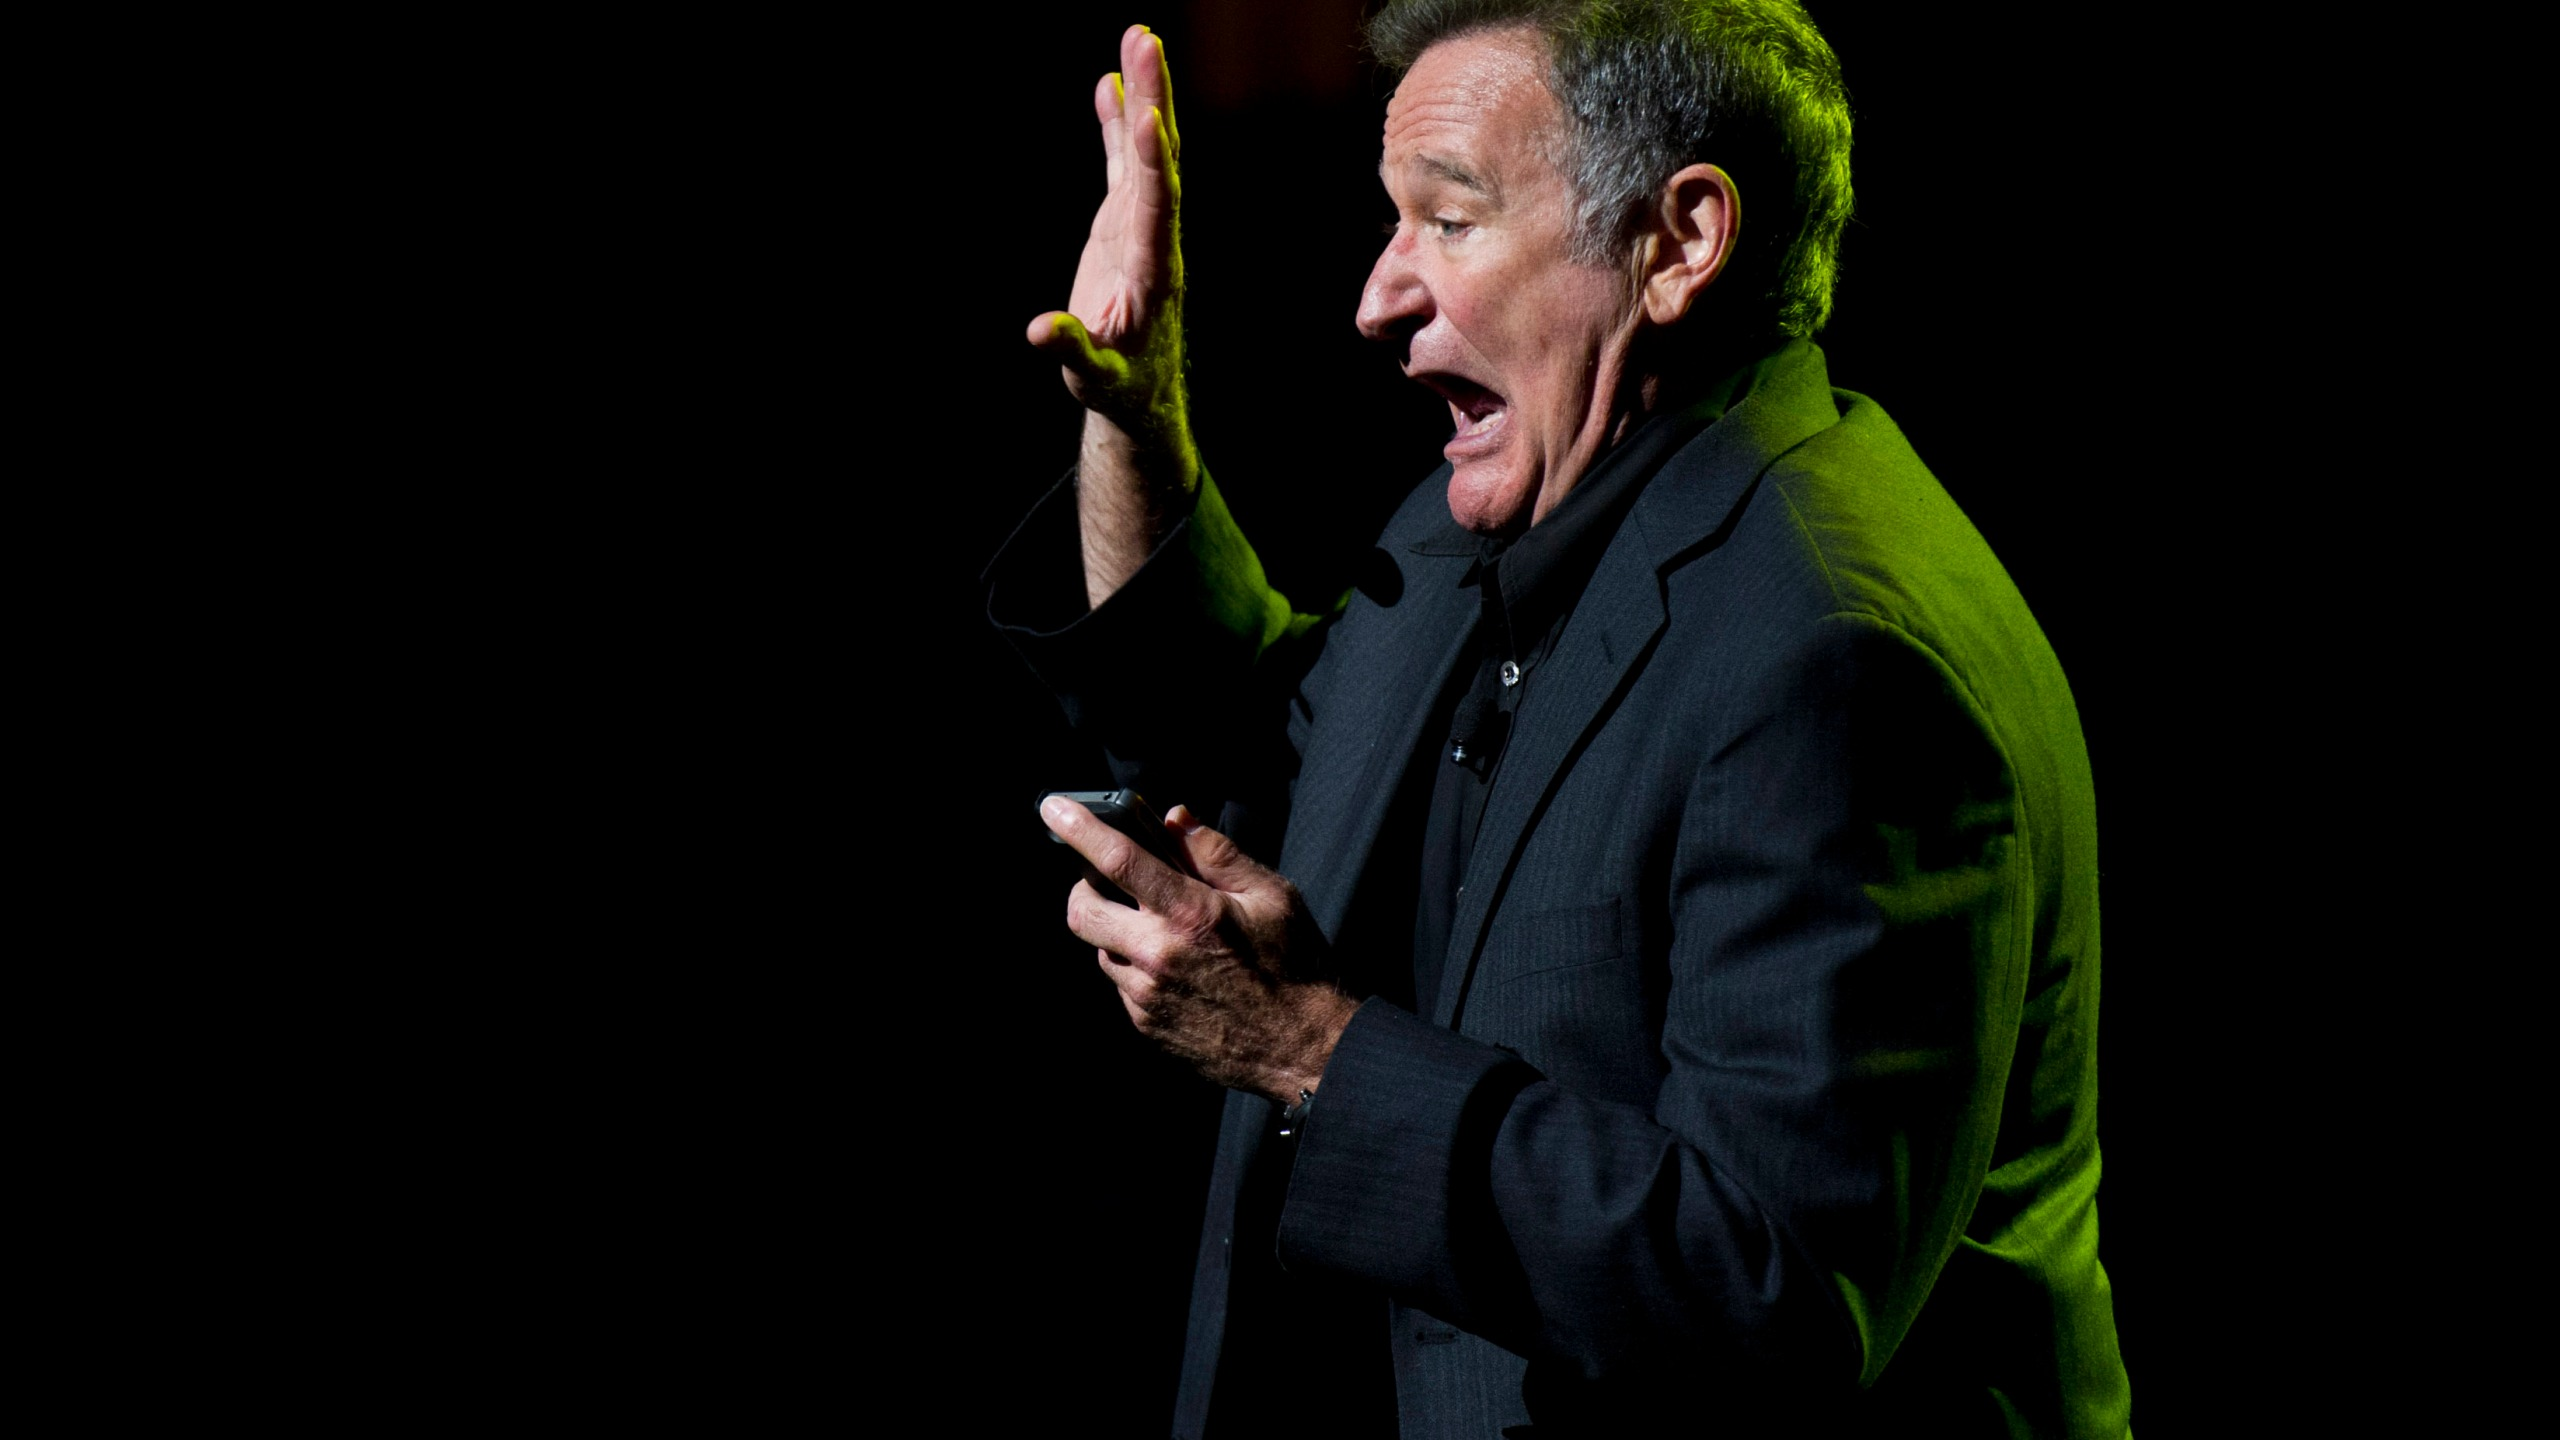 TV_Robin_Williams_Documentary_33261-159532.jpg25141746